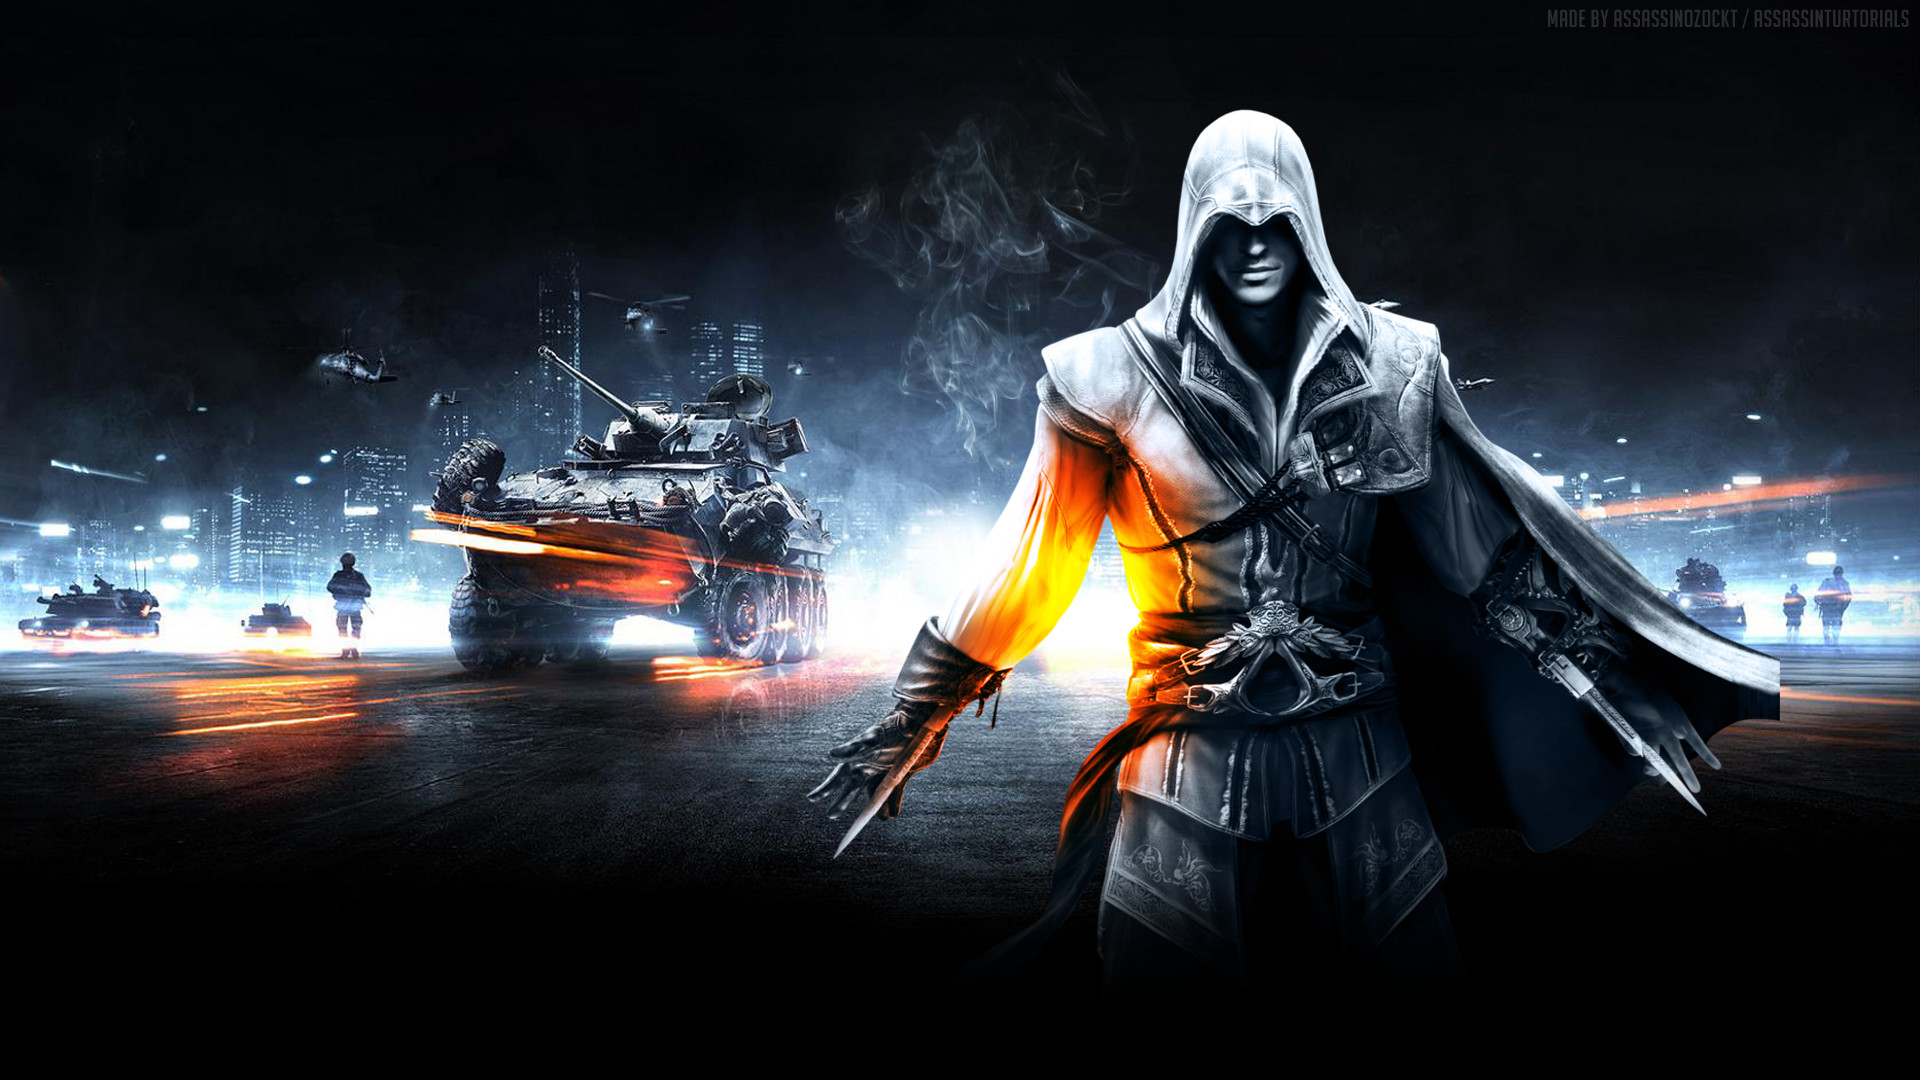 20 Awesome and Amazing 3D Video Games Wallpapers